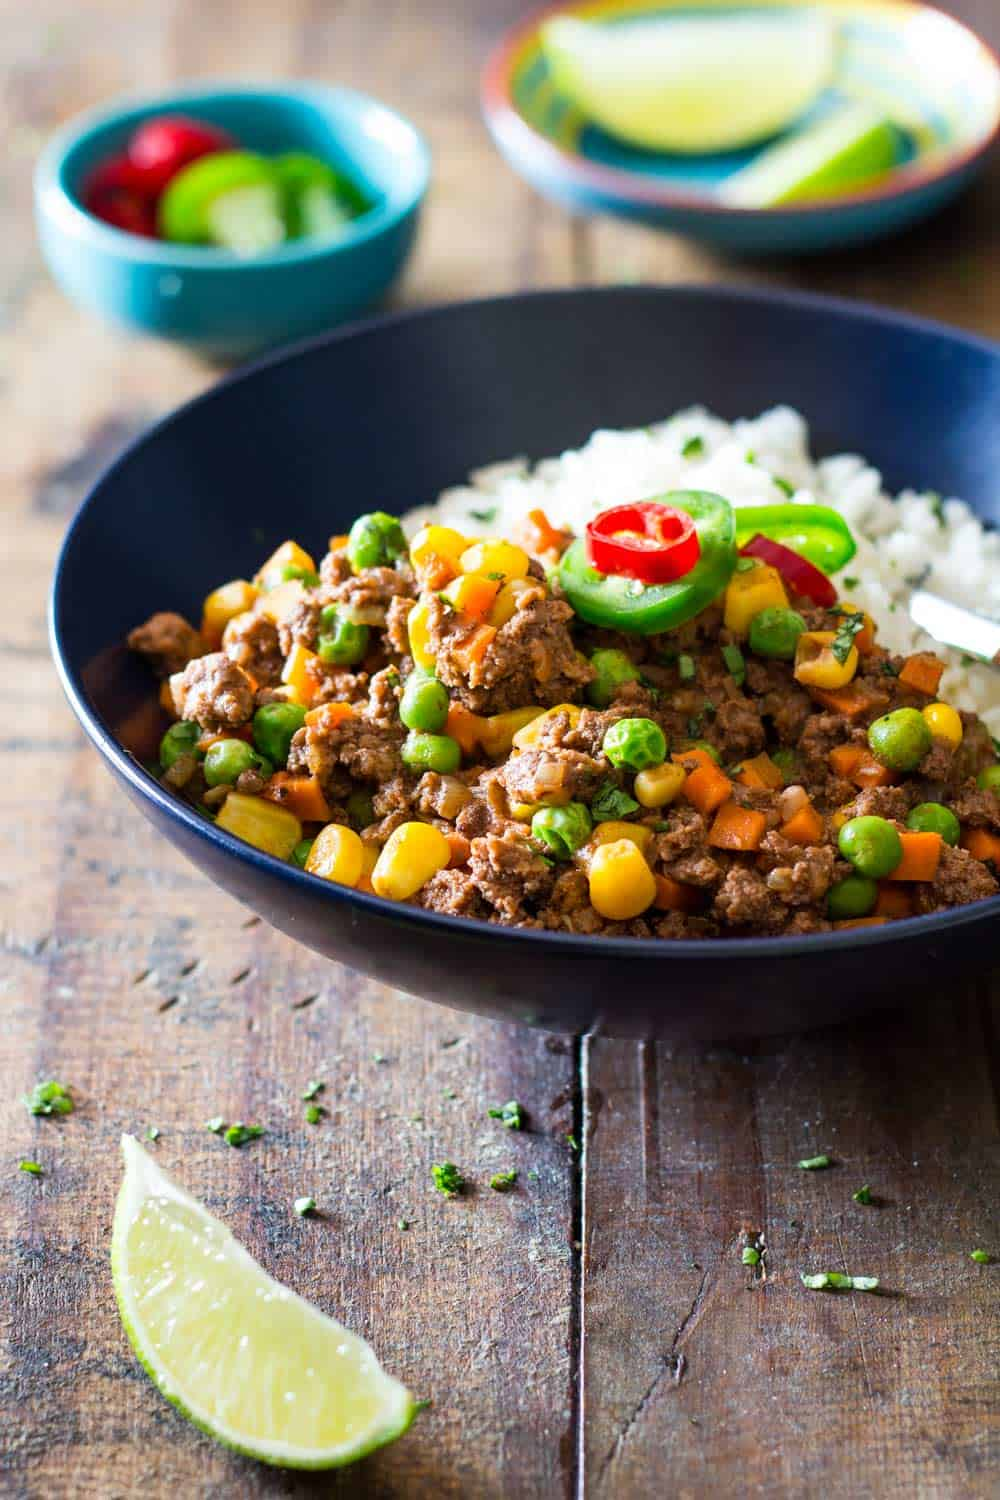 Mexican Picadillo served over rice in a dark blue bowl